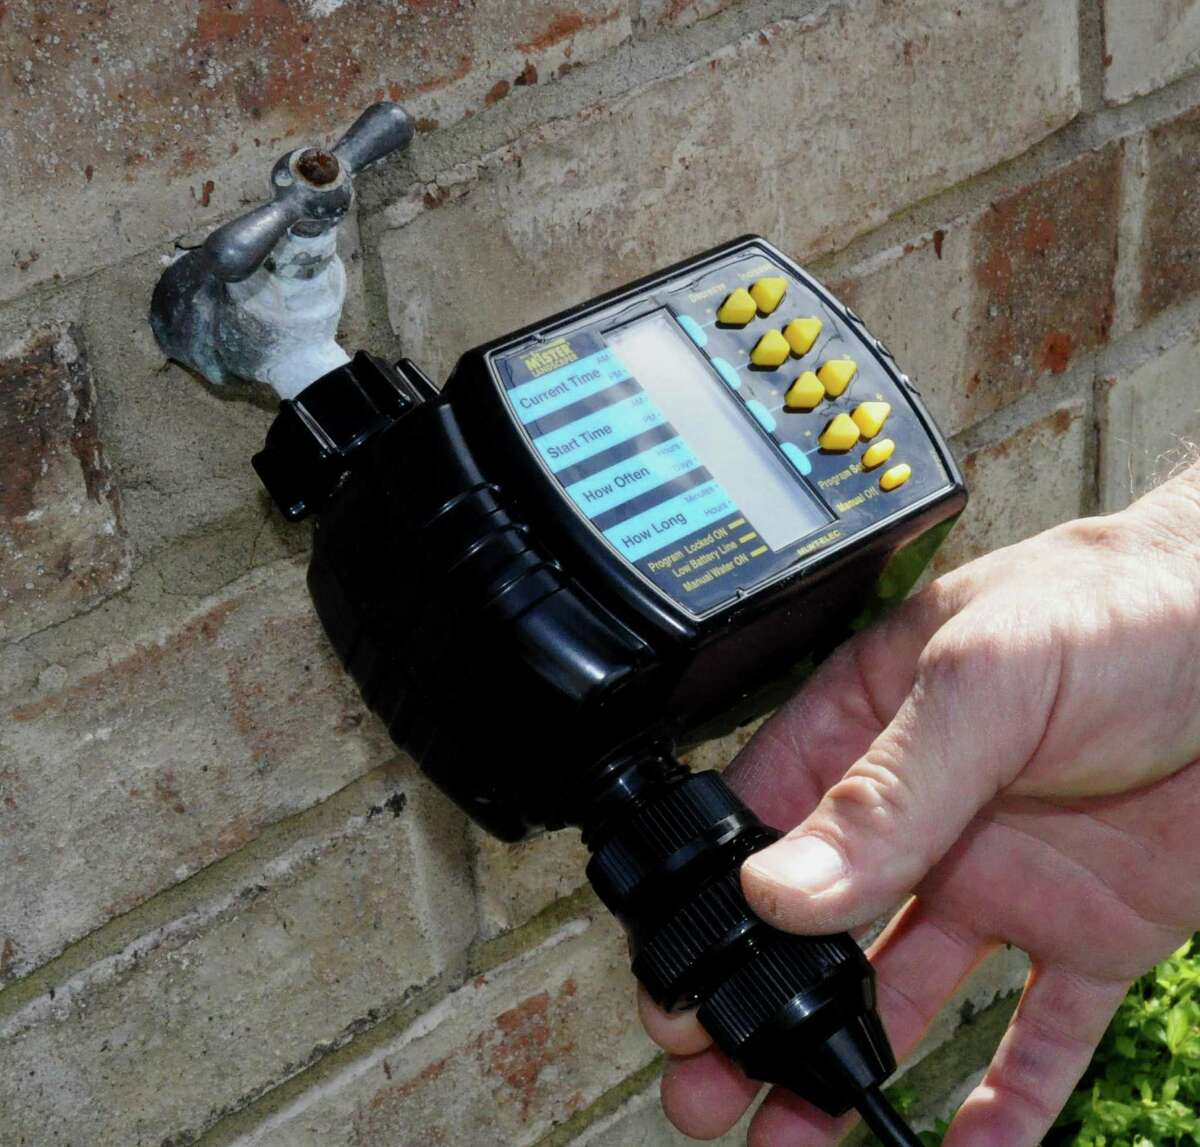 Timer attachments can control when and how long plants get watered.